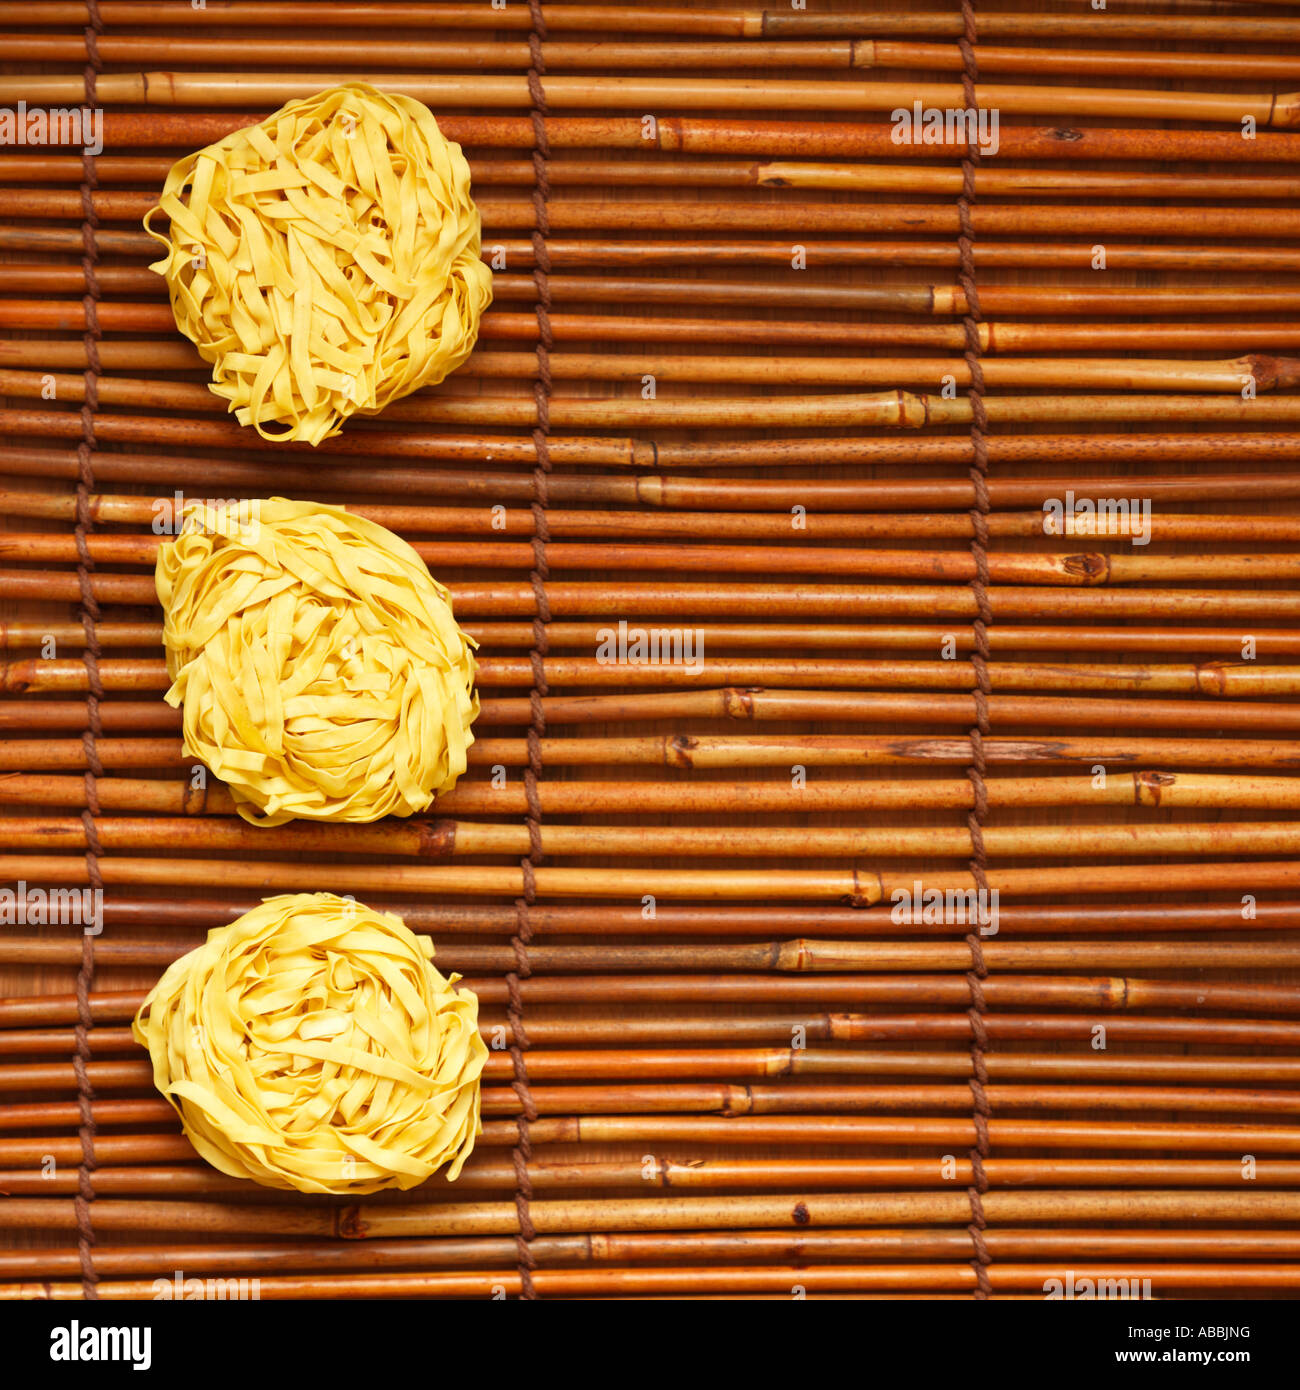 Noodles on Bamboo Placemats Stock Photo